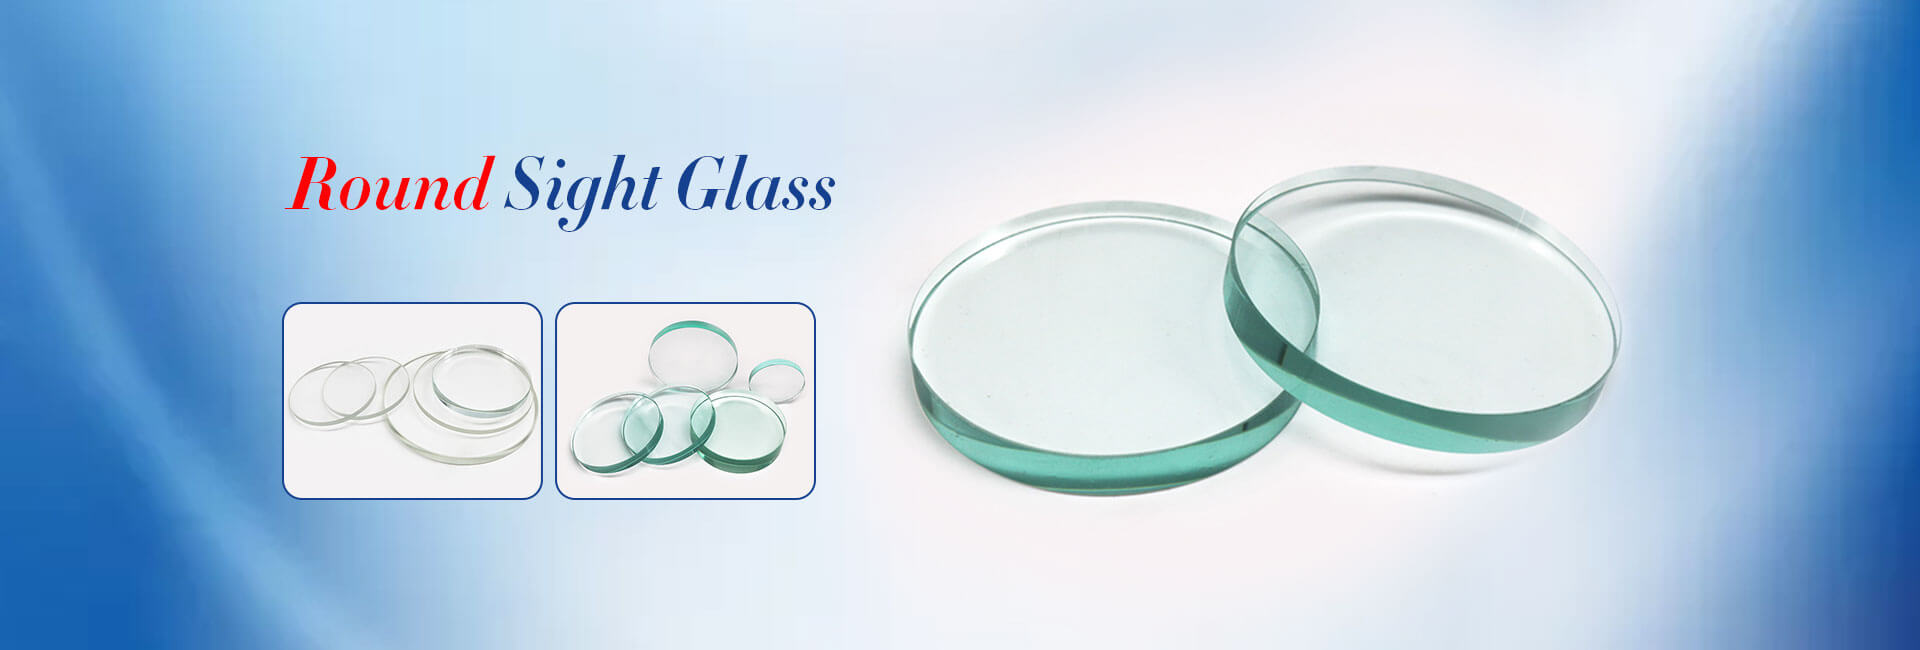 Round Sight Glass